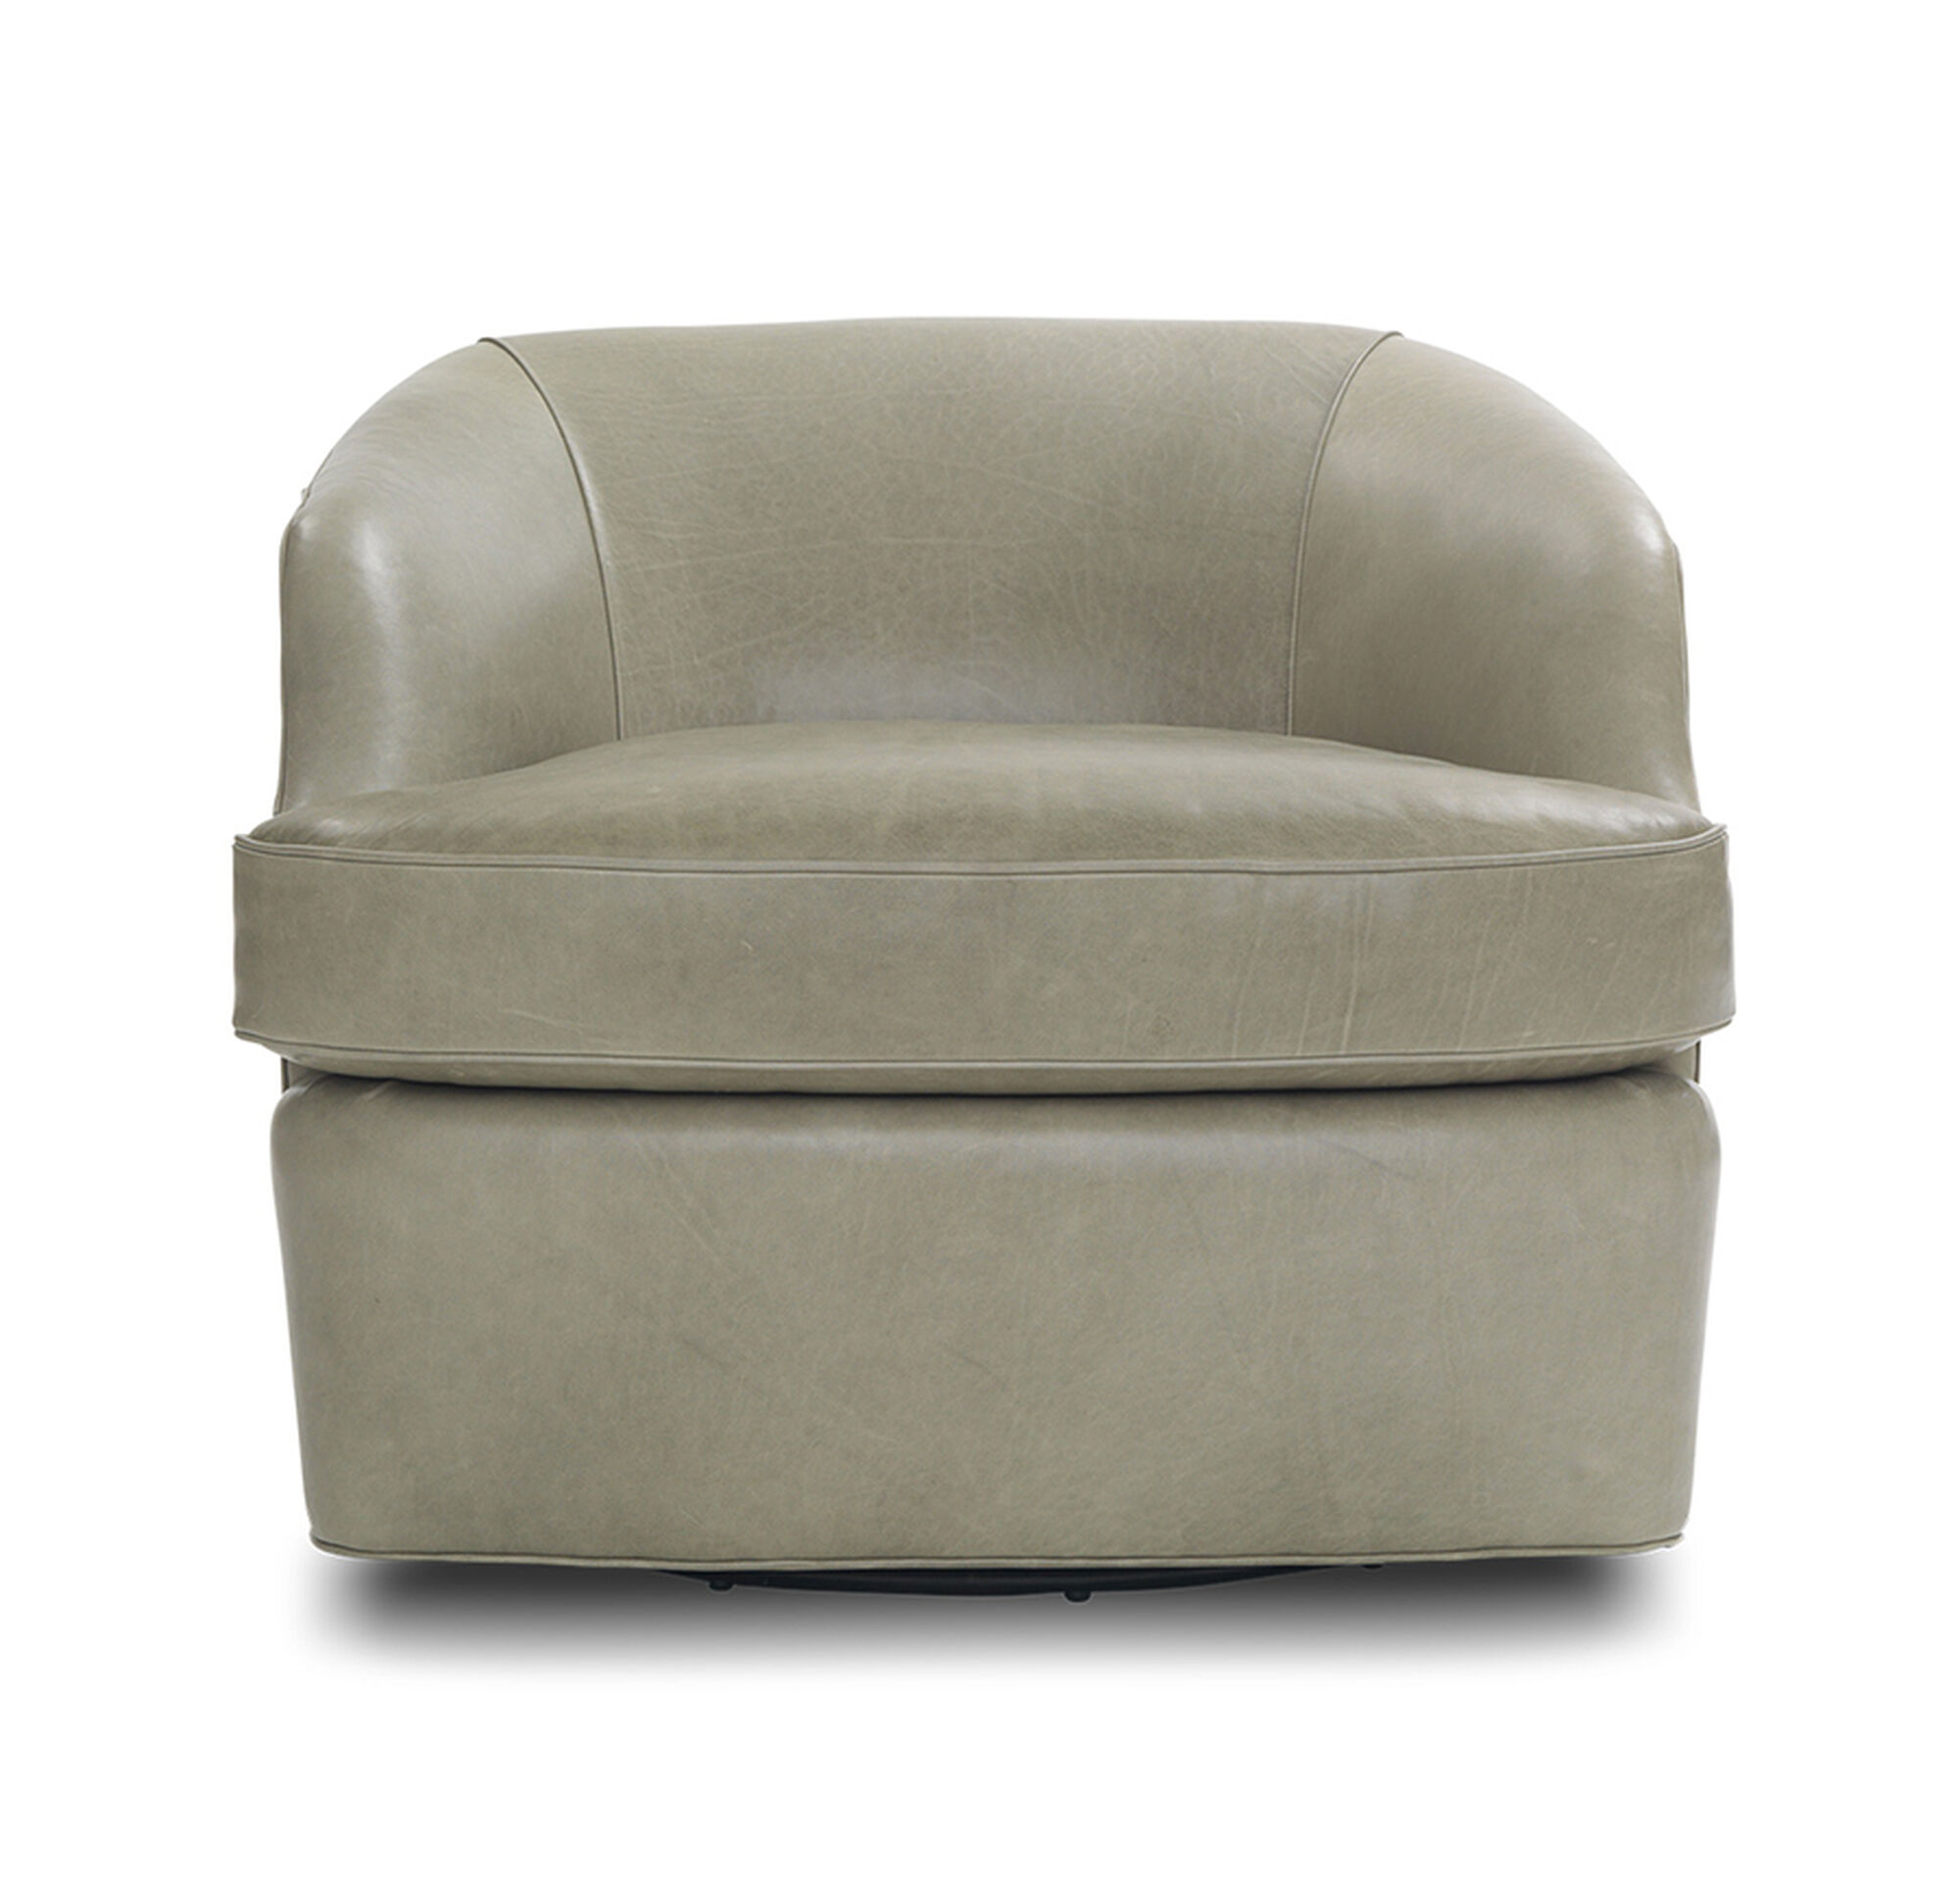 ARIES LEATHER FULL SWIVEL CHAIR